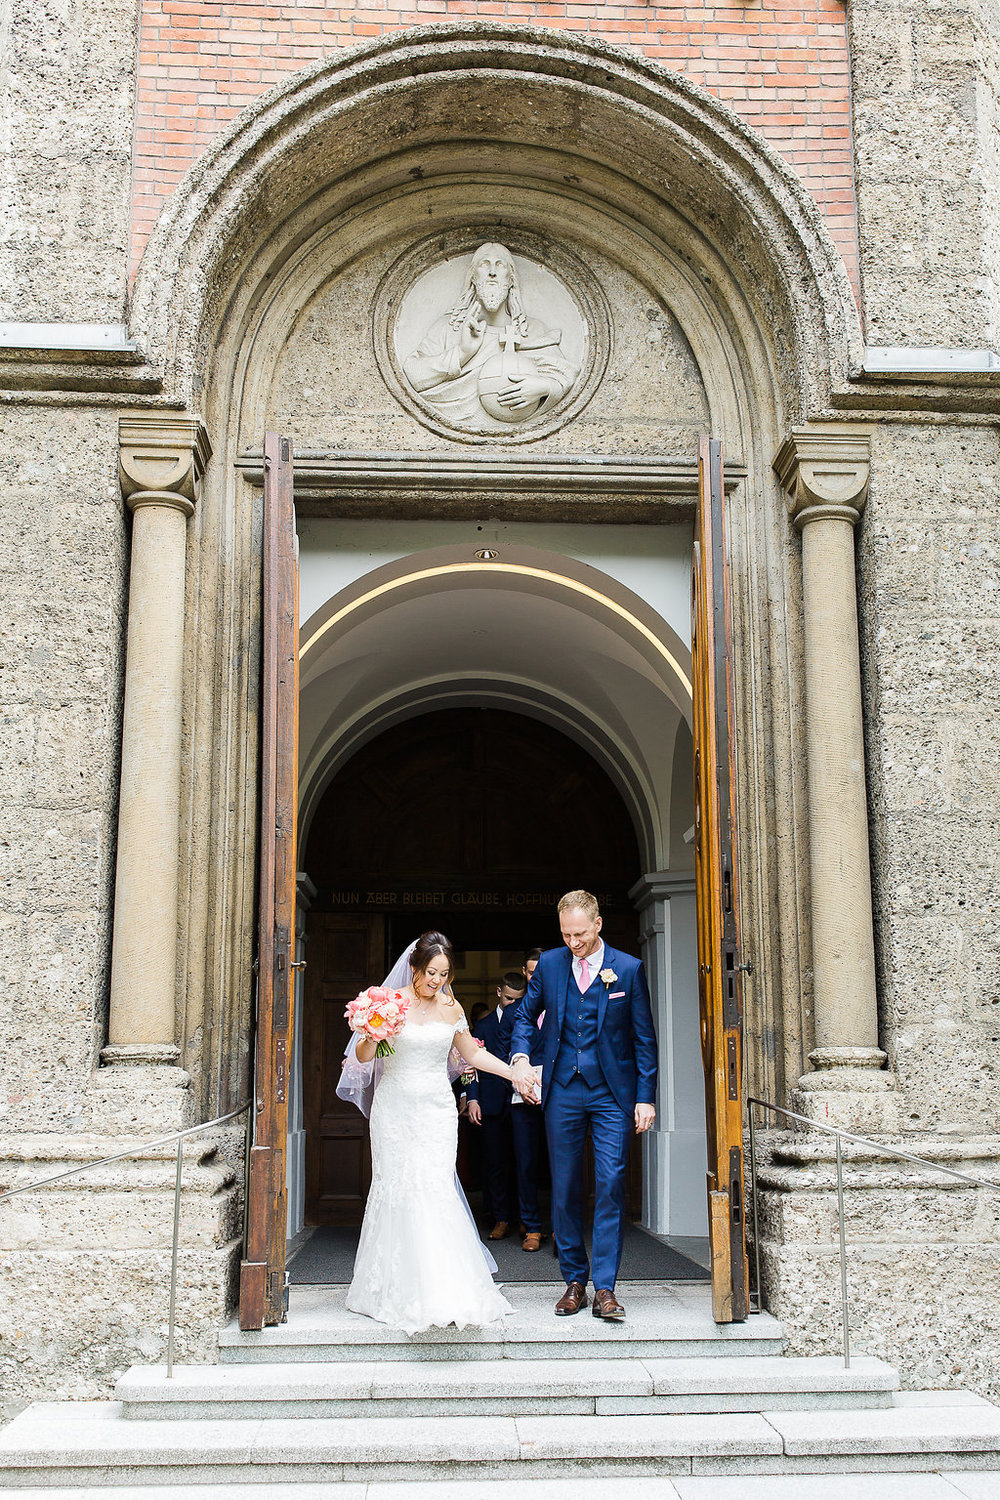 Luxe Navy and Pink Wedding at Schloss Fuschl in Austria by Tanja Kibogo20.JPG